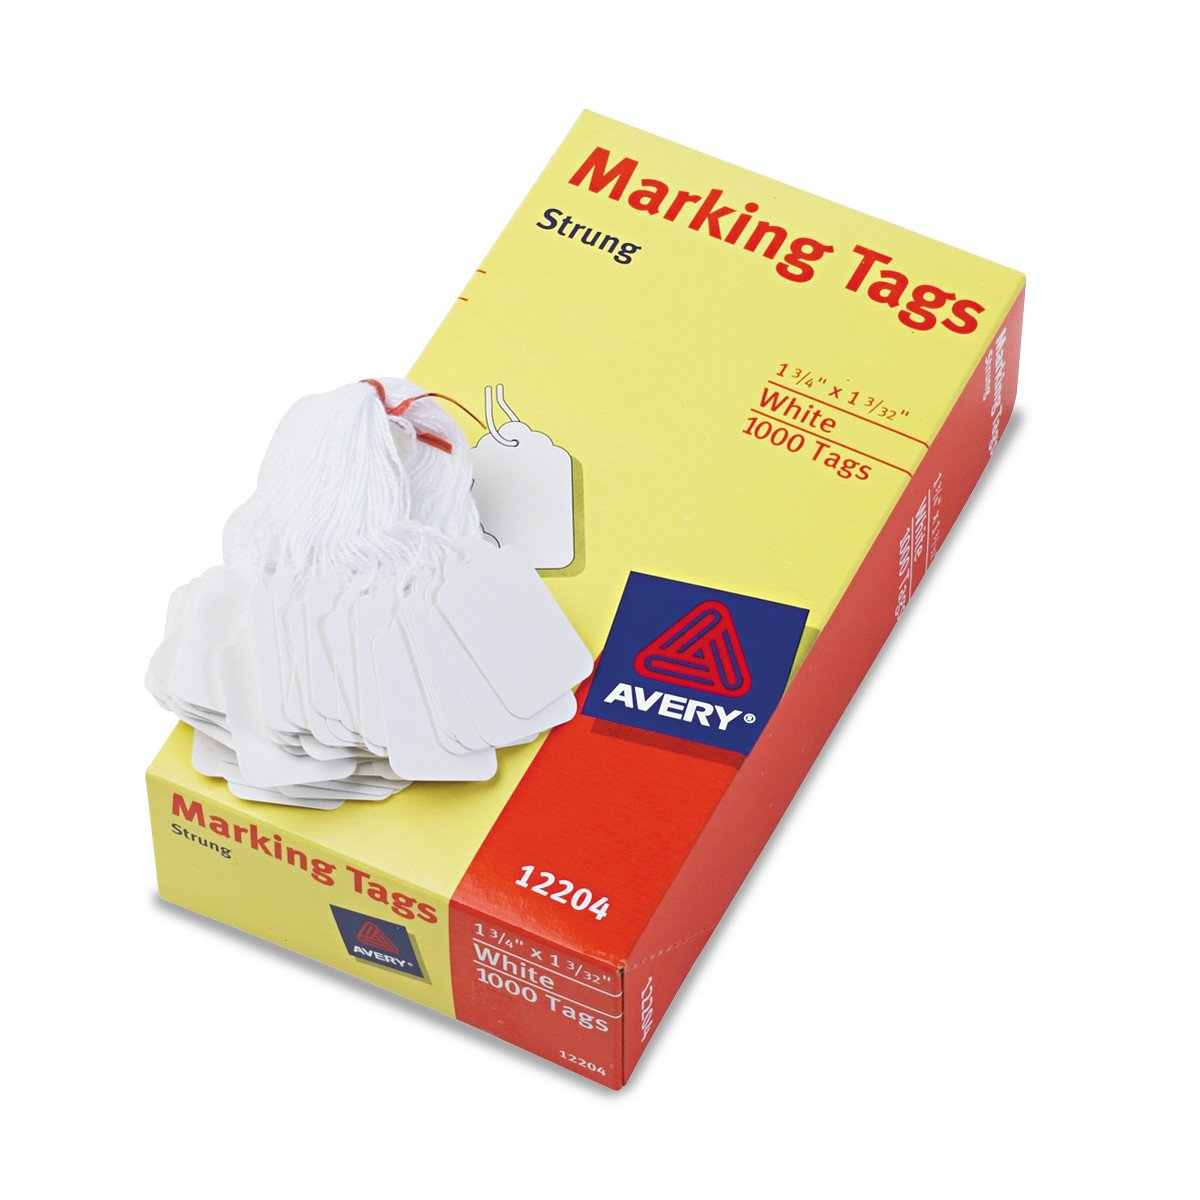 Blanco Marking 1 Tags, Paper, 1 Marking 3/4 x 1 3/32, Blanco, 1,000/Box 353f37